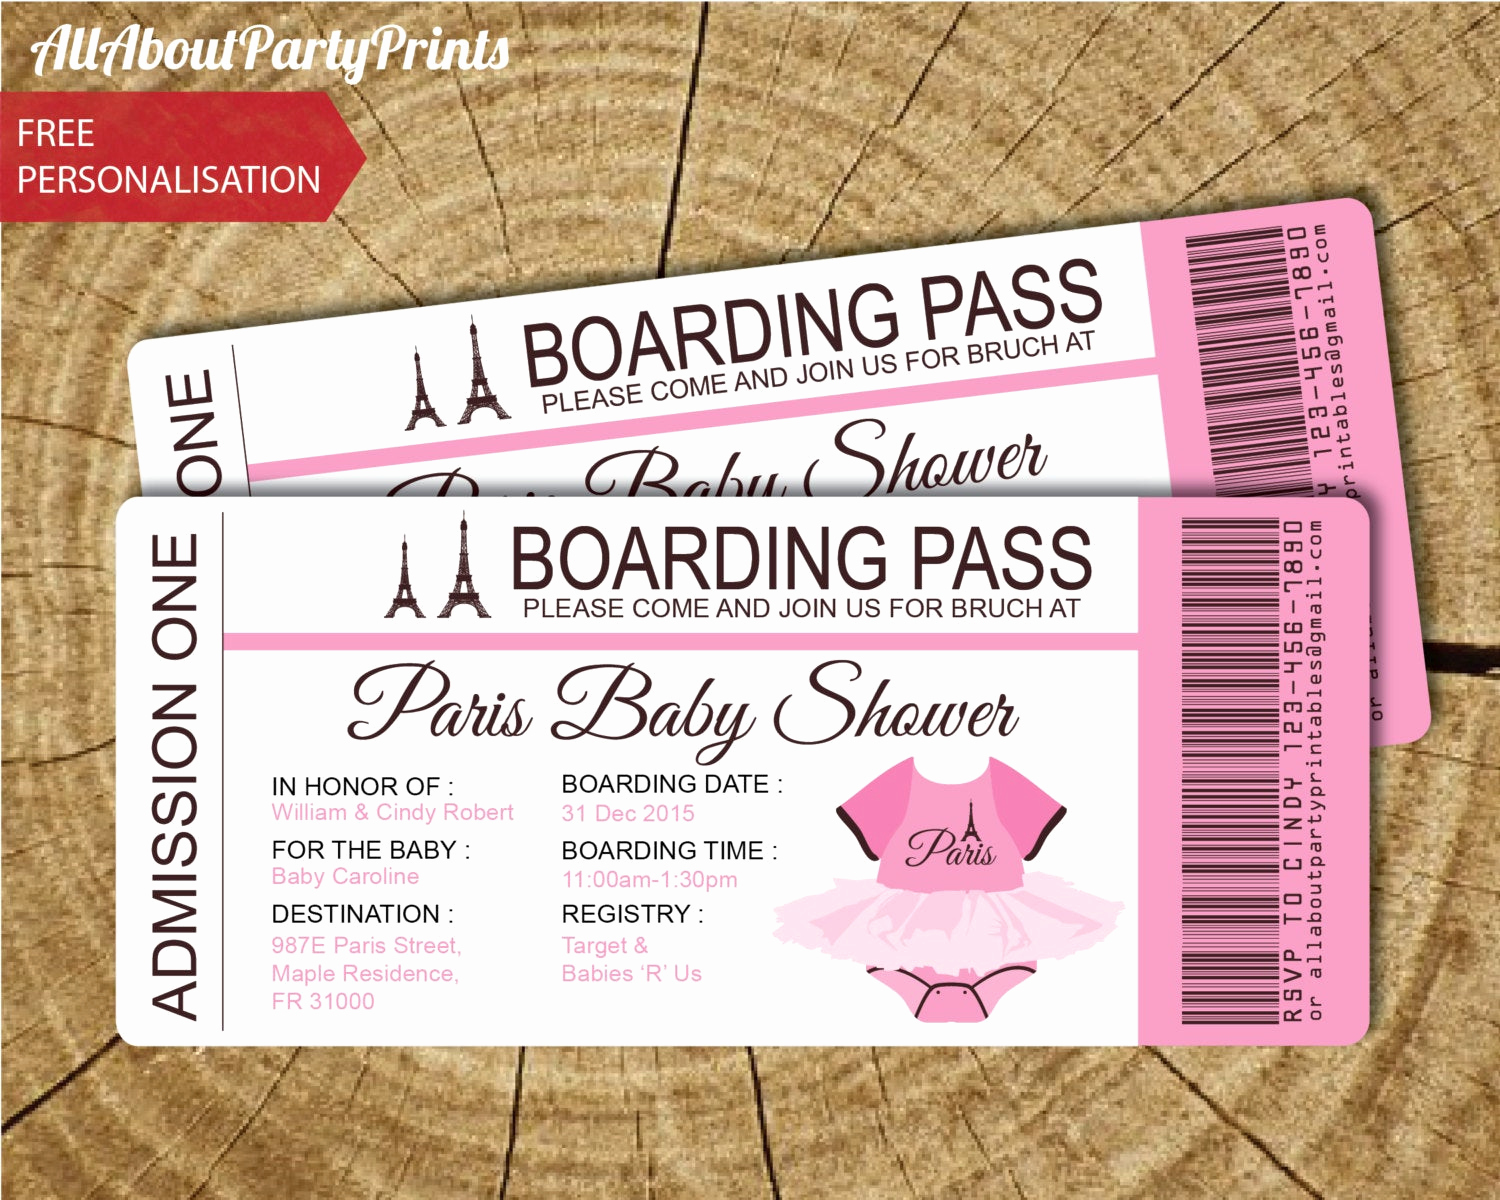 Passport to Paris Invitation Inspirational Paris Baby Shower Passport and Boarding Pass